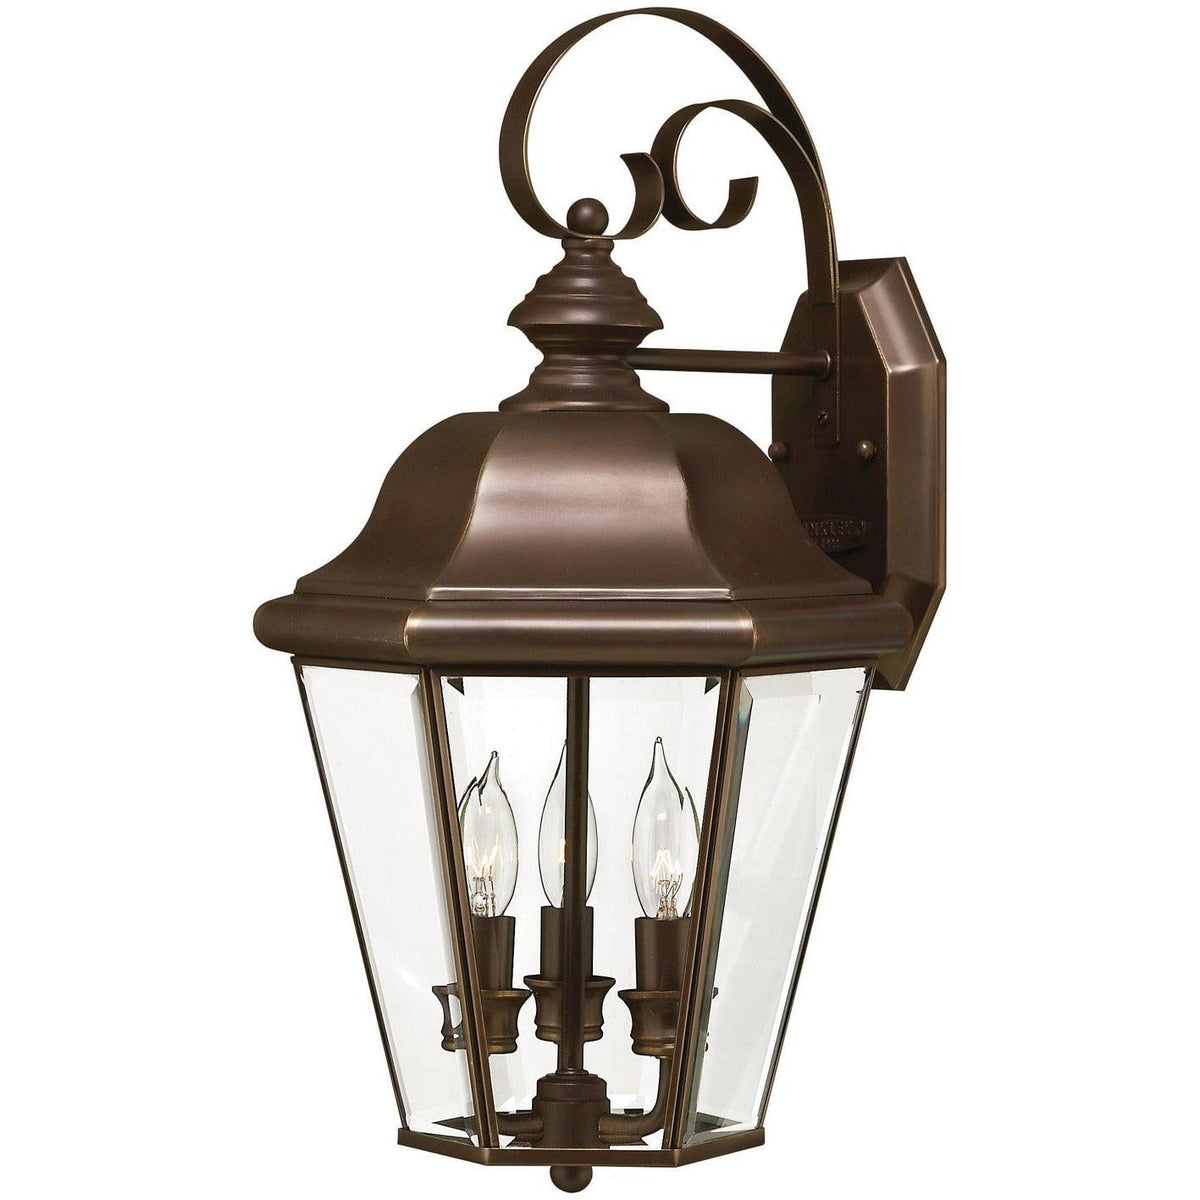 Hinkley Canada - 2424CB - Three Light Wall Mount - Clifton Park - Copper Bronze